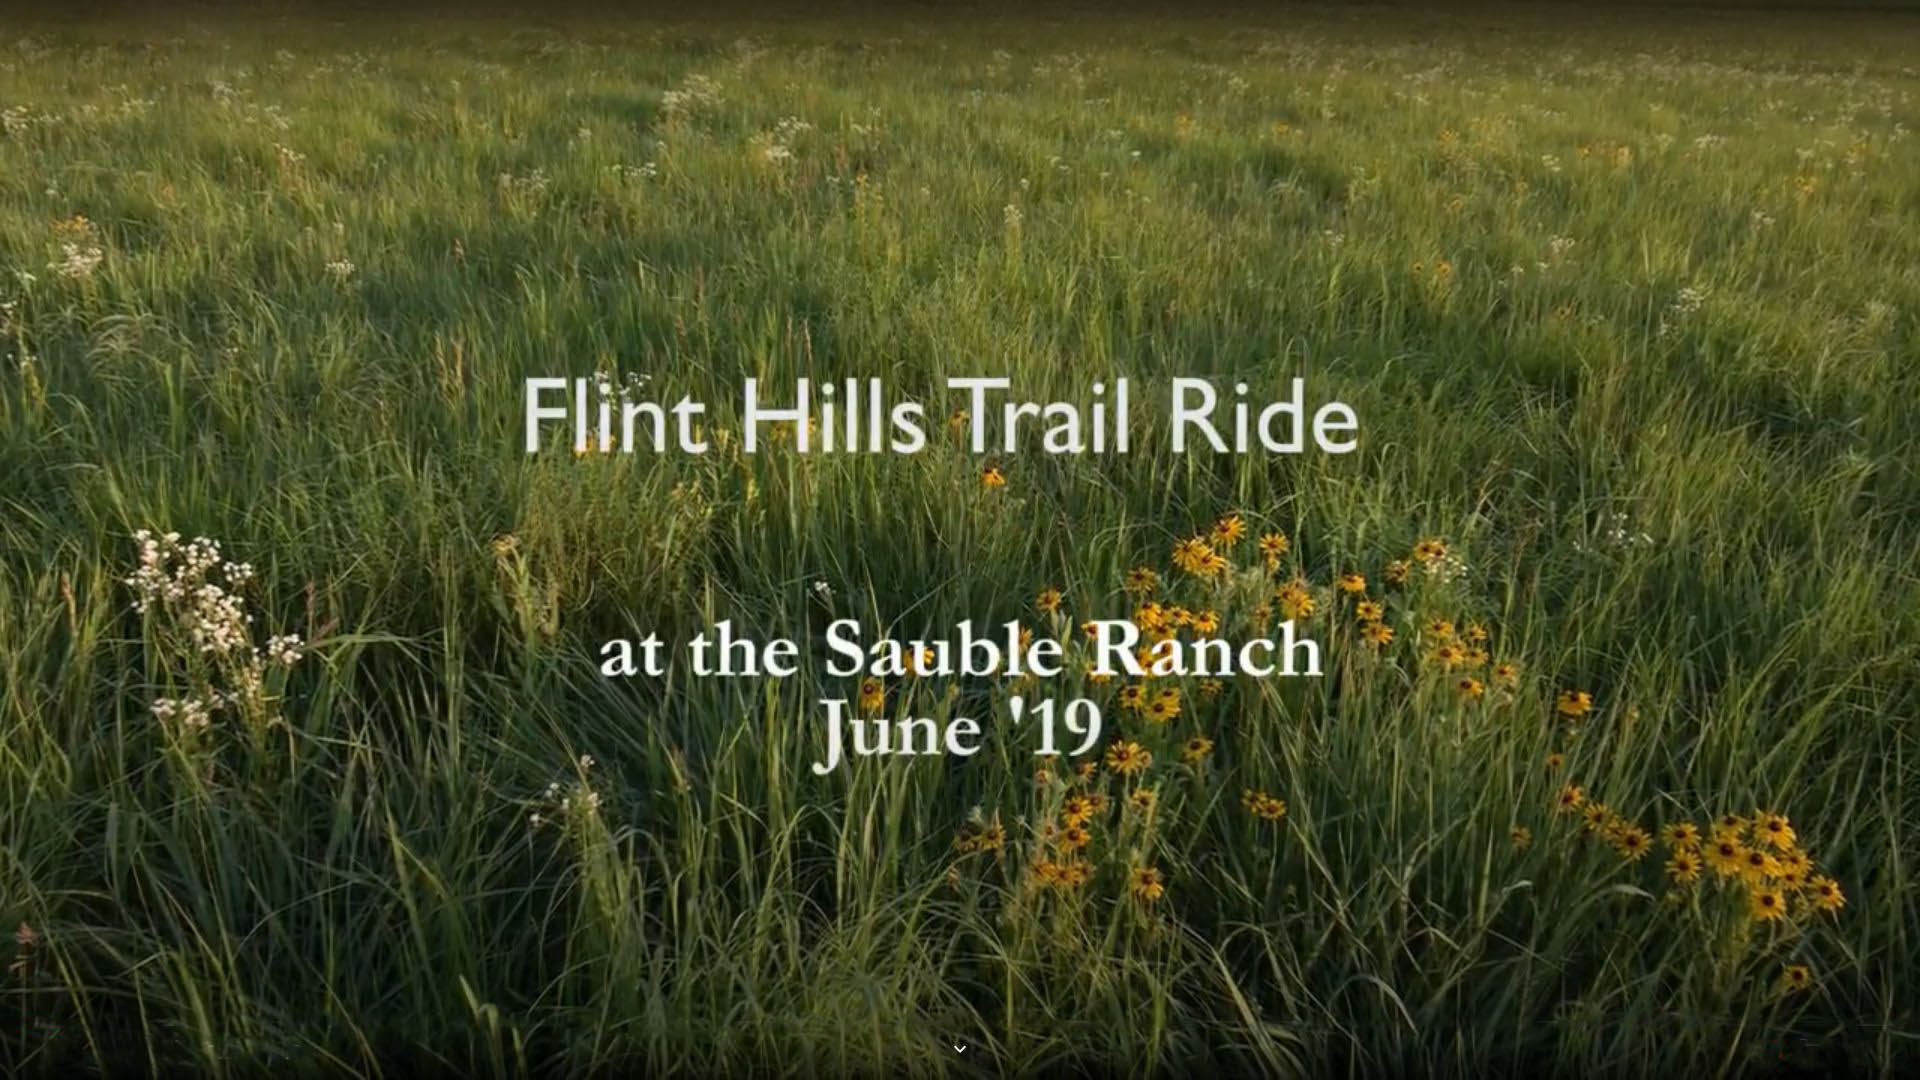 Text: Flint Hills Trail Ride on background of wildflowers and grass in the Flint Hills